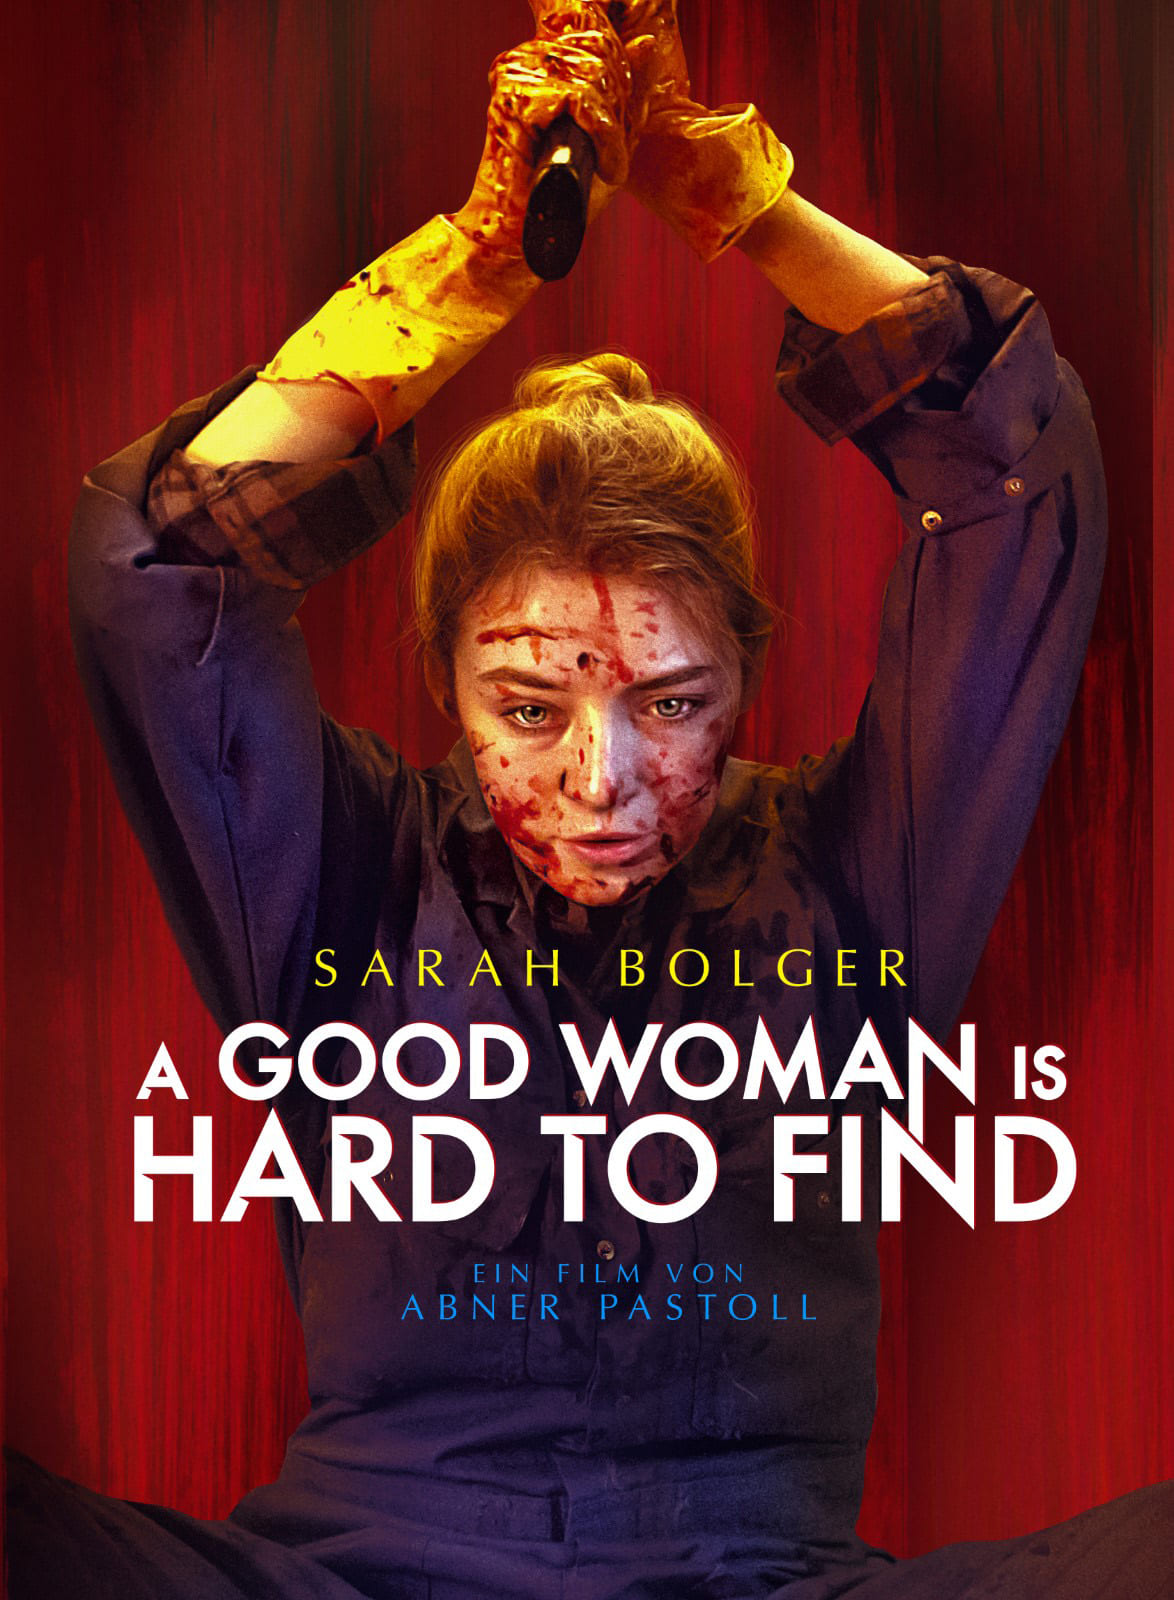 A Good Woman Is Hard to Find - Wikipedia